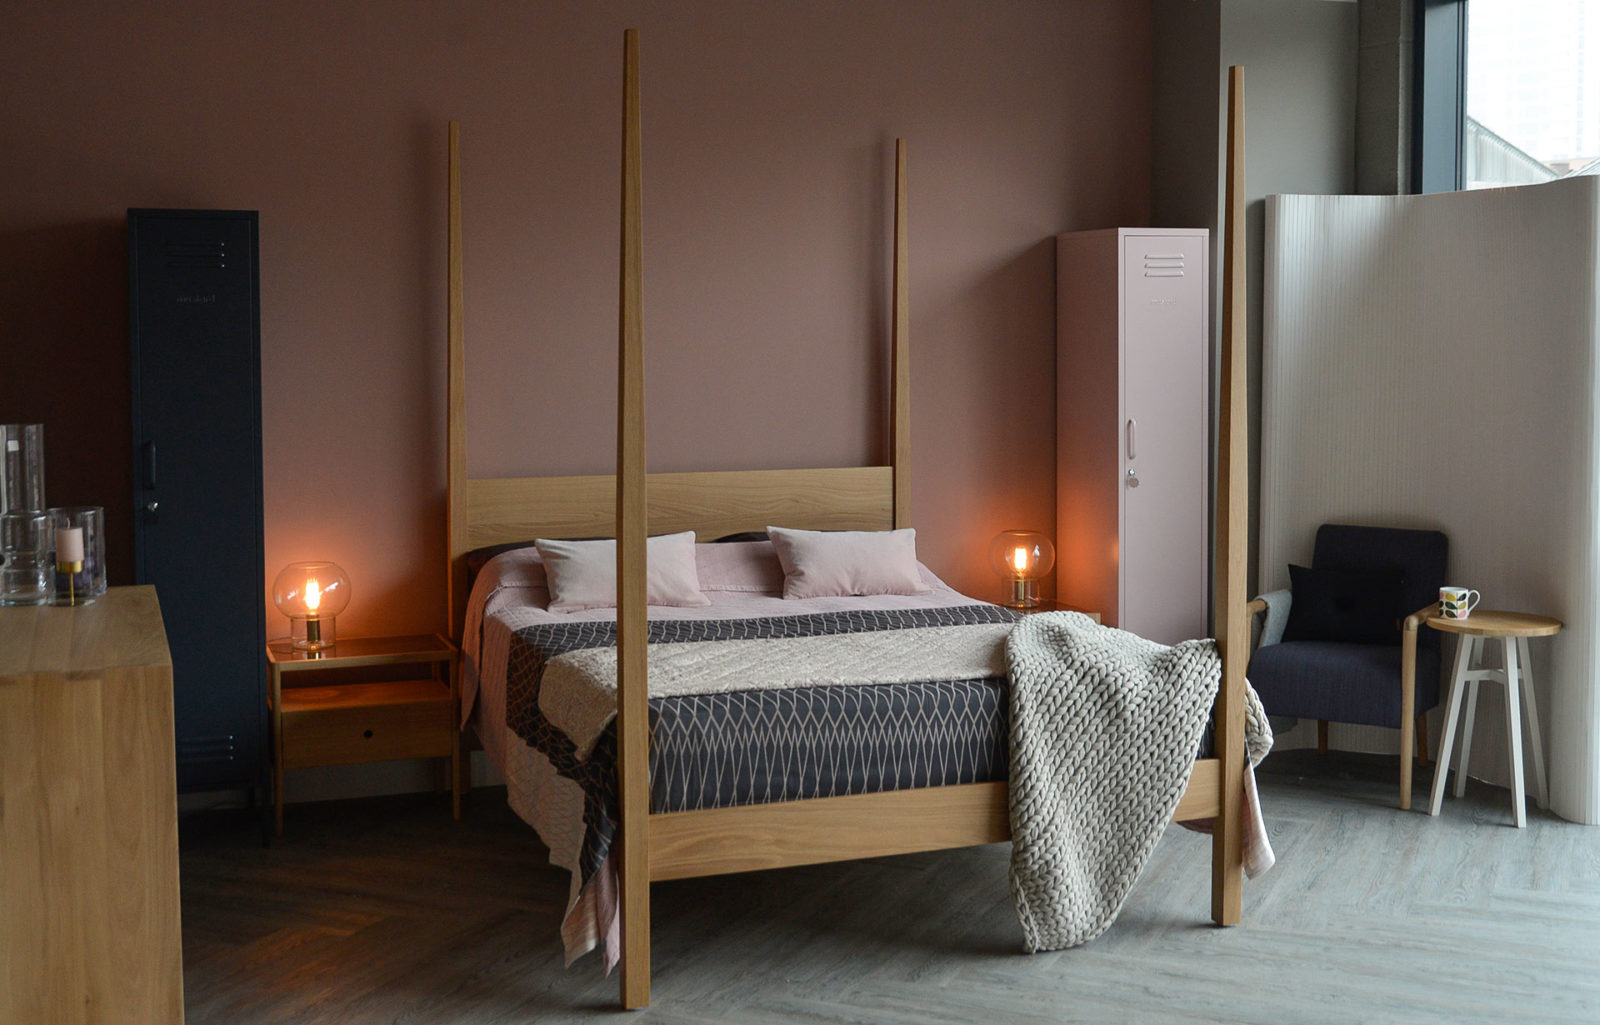 Hatfield tall 4 post wooden bed made in UK from sustainably sourced wood.